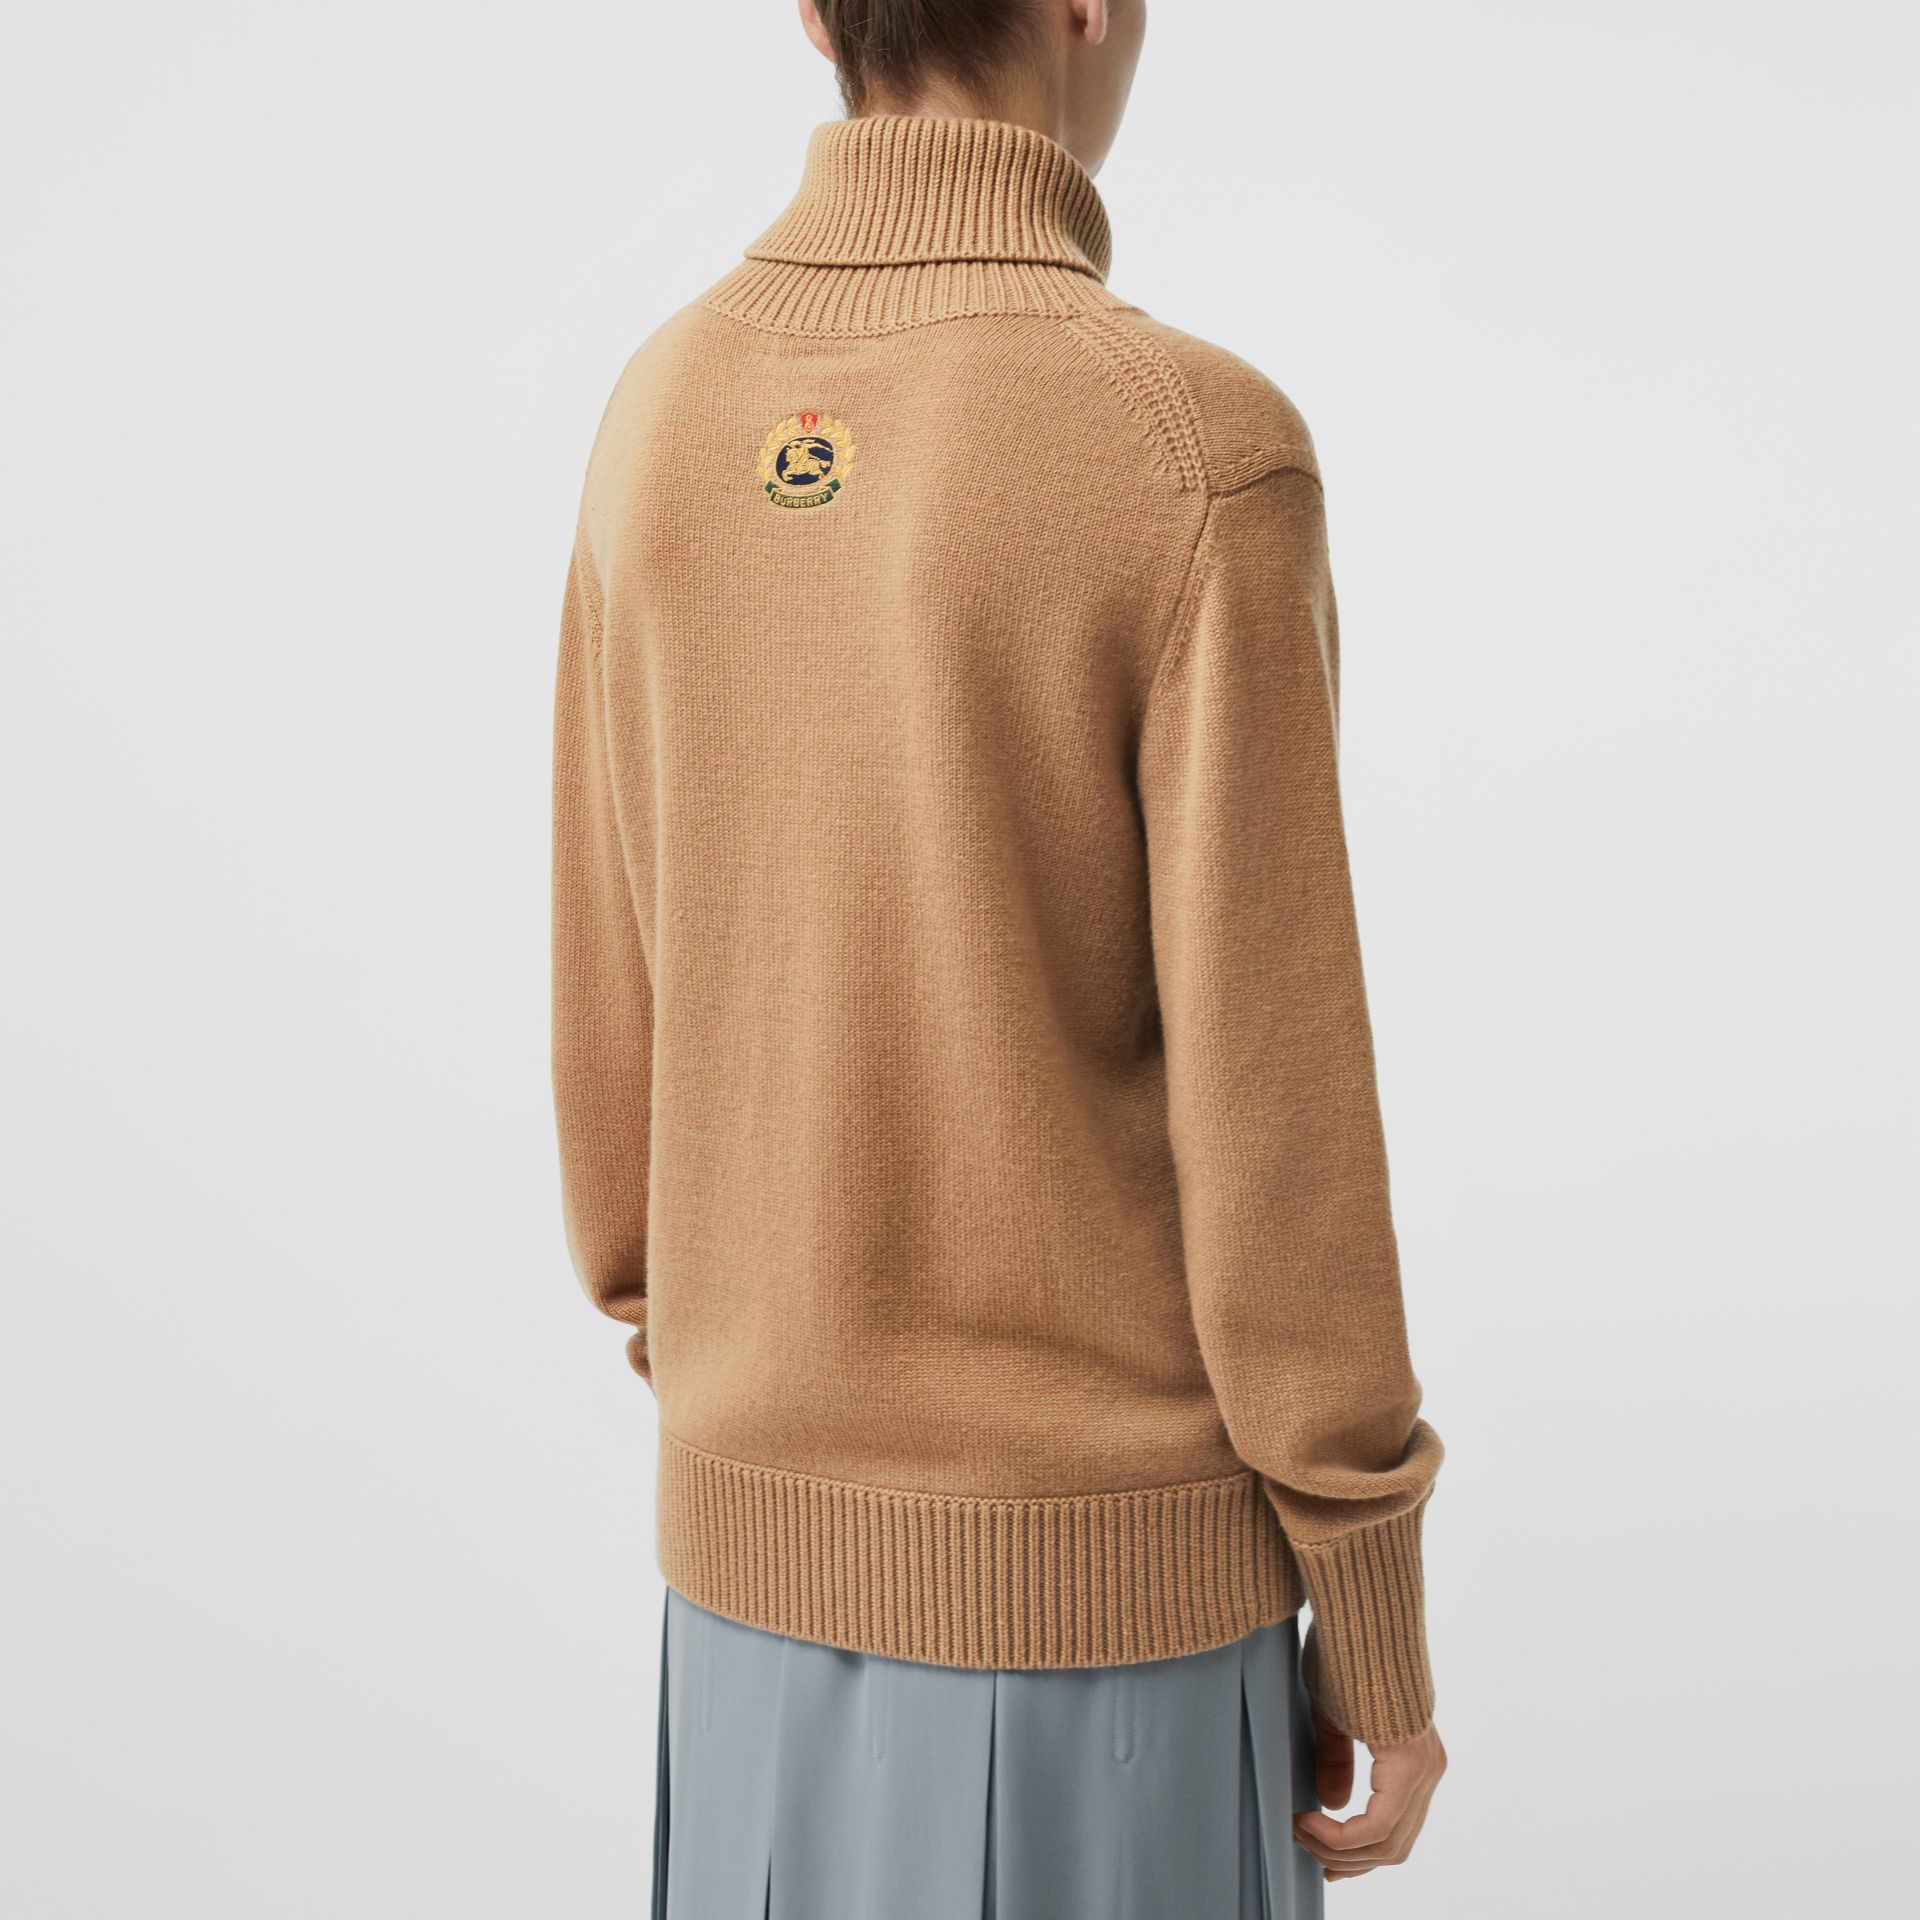 Embroidered Crest Cashmere Roll-neck Sweater in Camel - Women | Burberry - gallery image 2